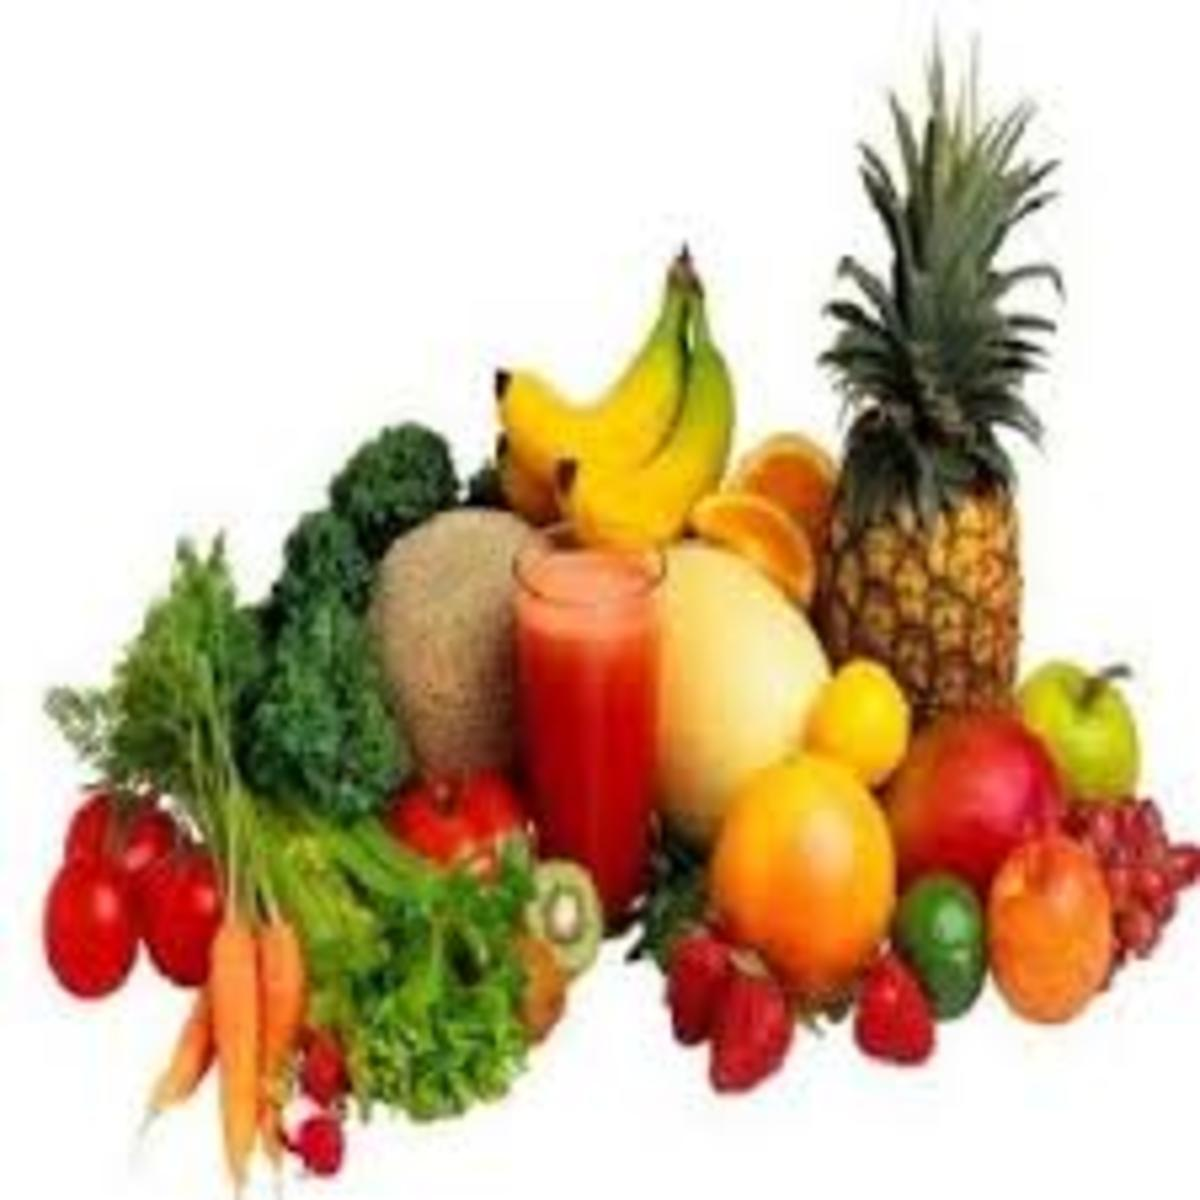 Eat lots of vegetables and fruits.